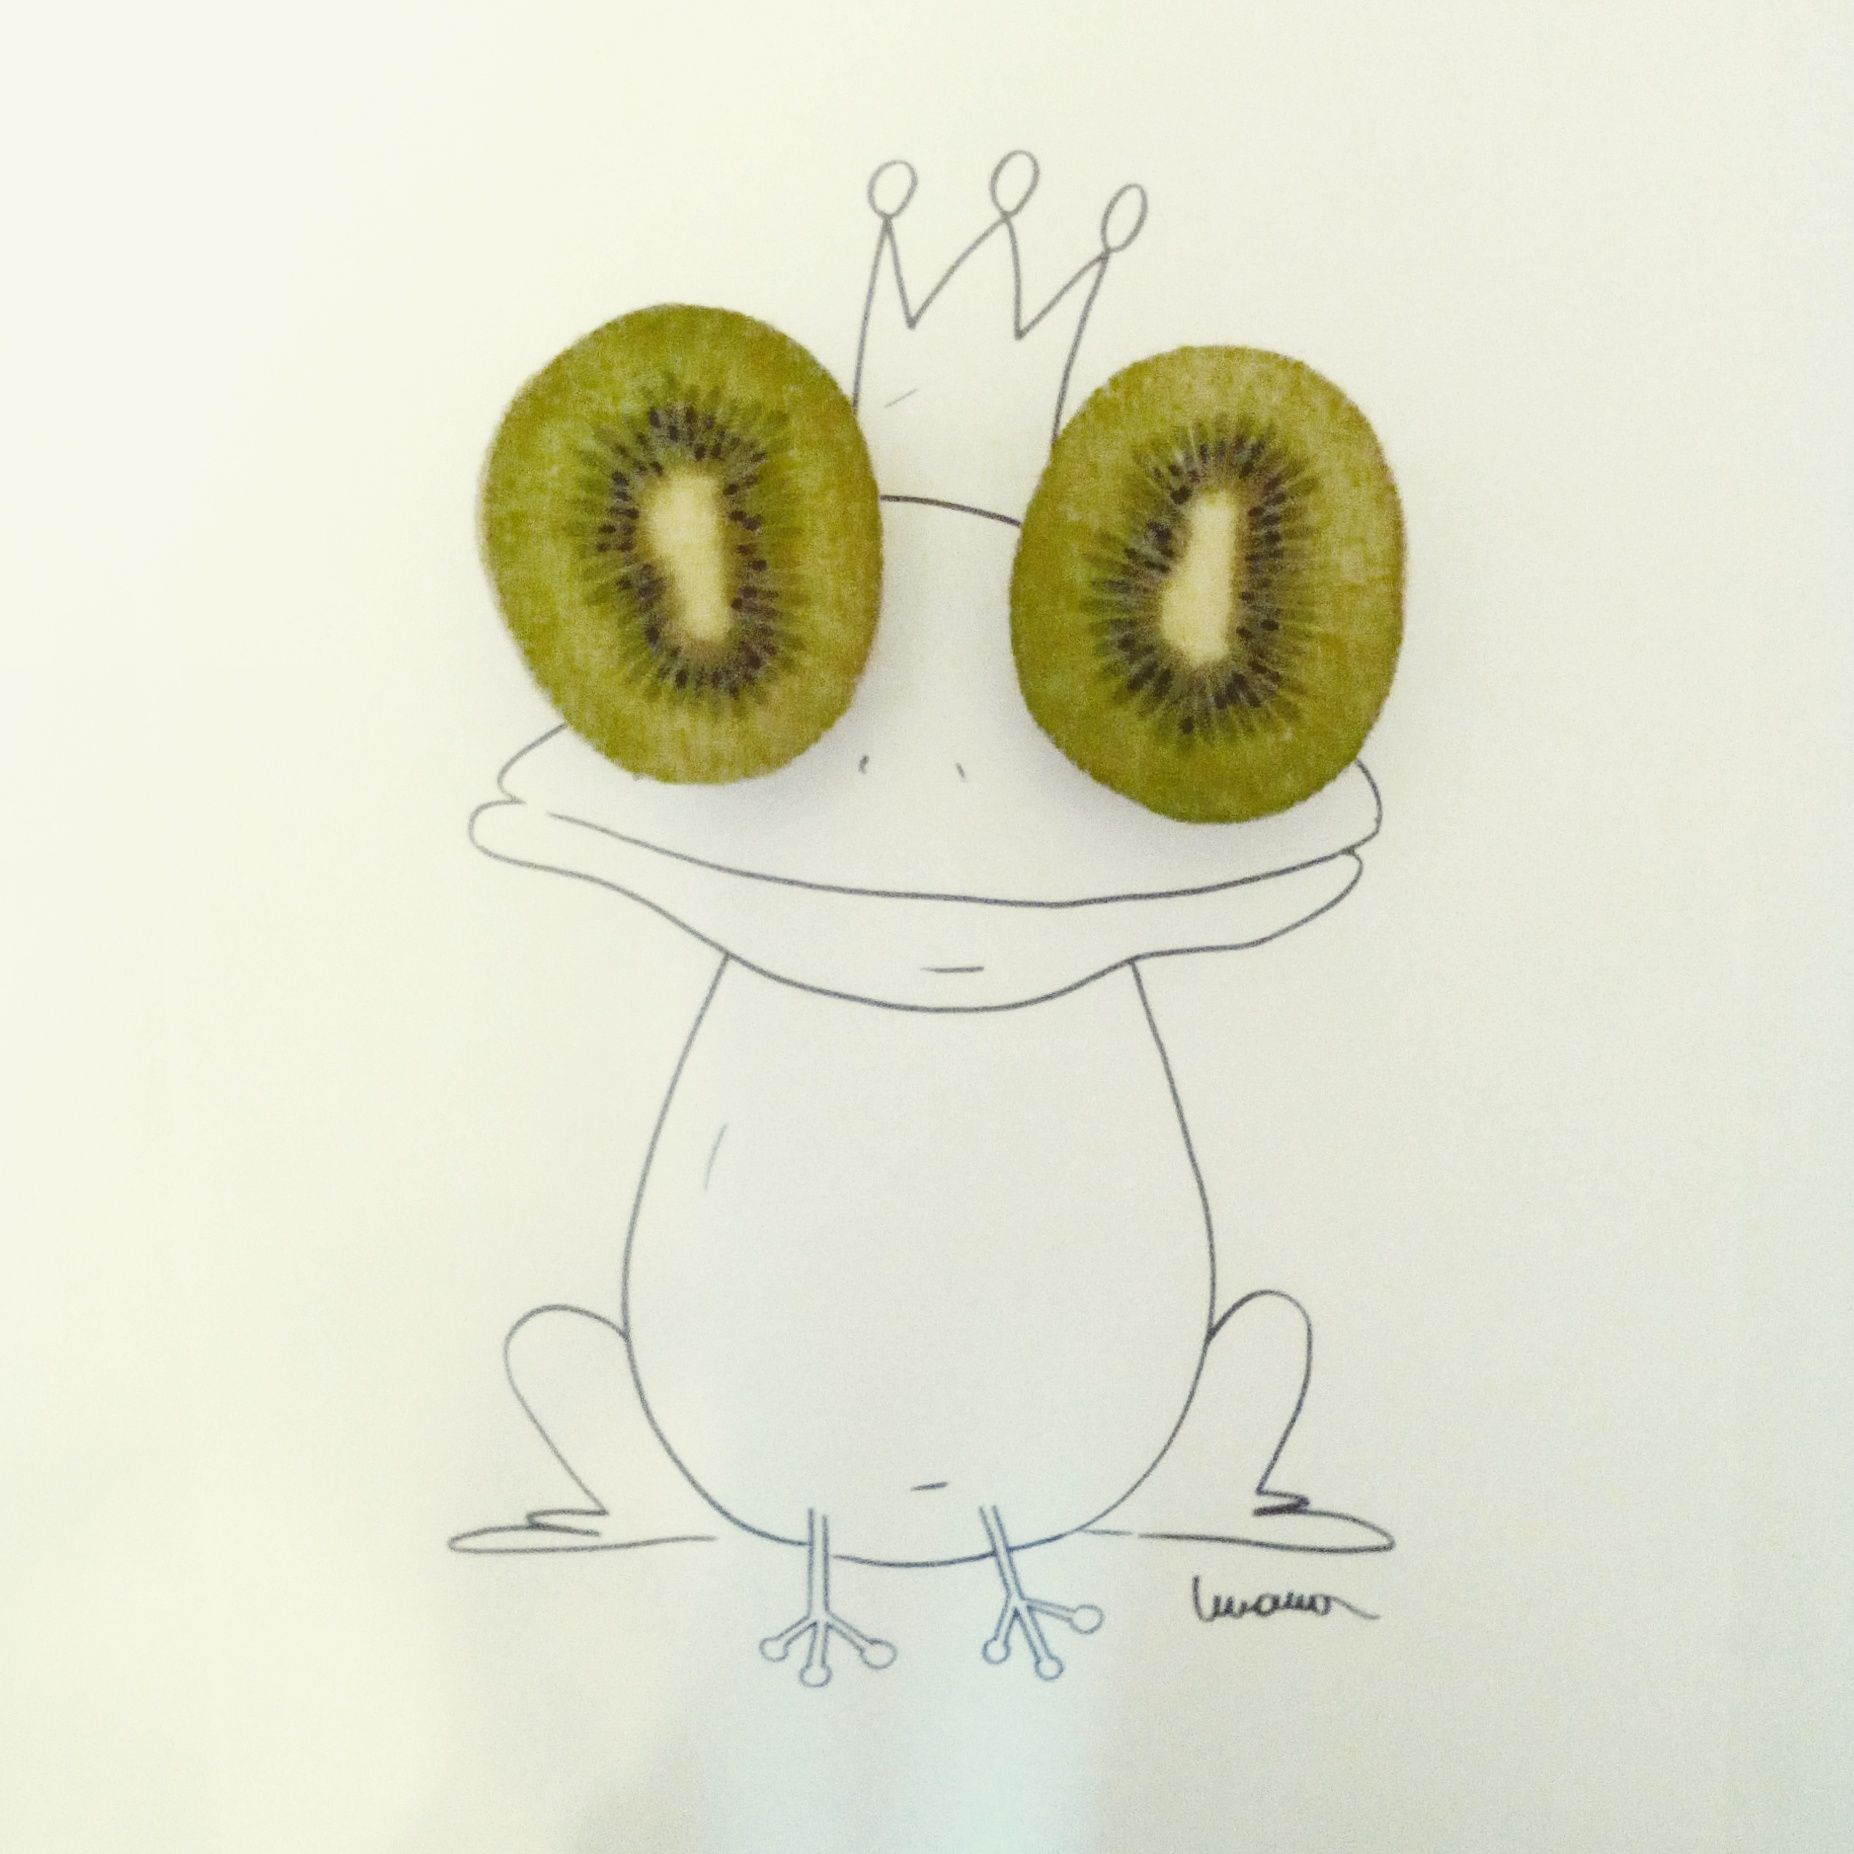 Frog crazy kiwi sketchs sunday pictures